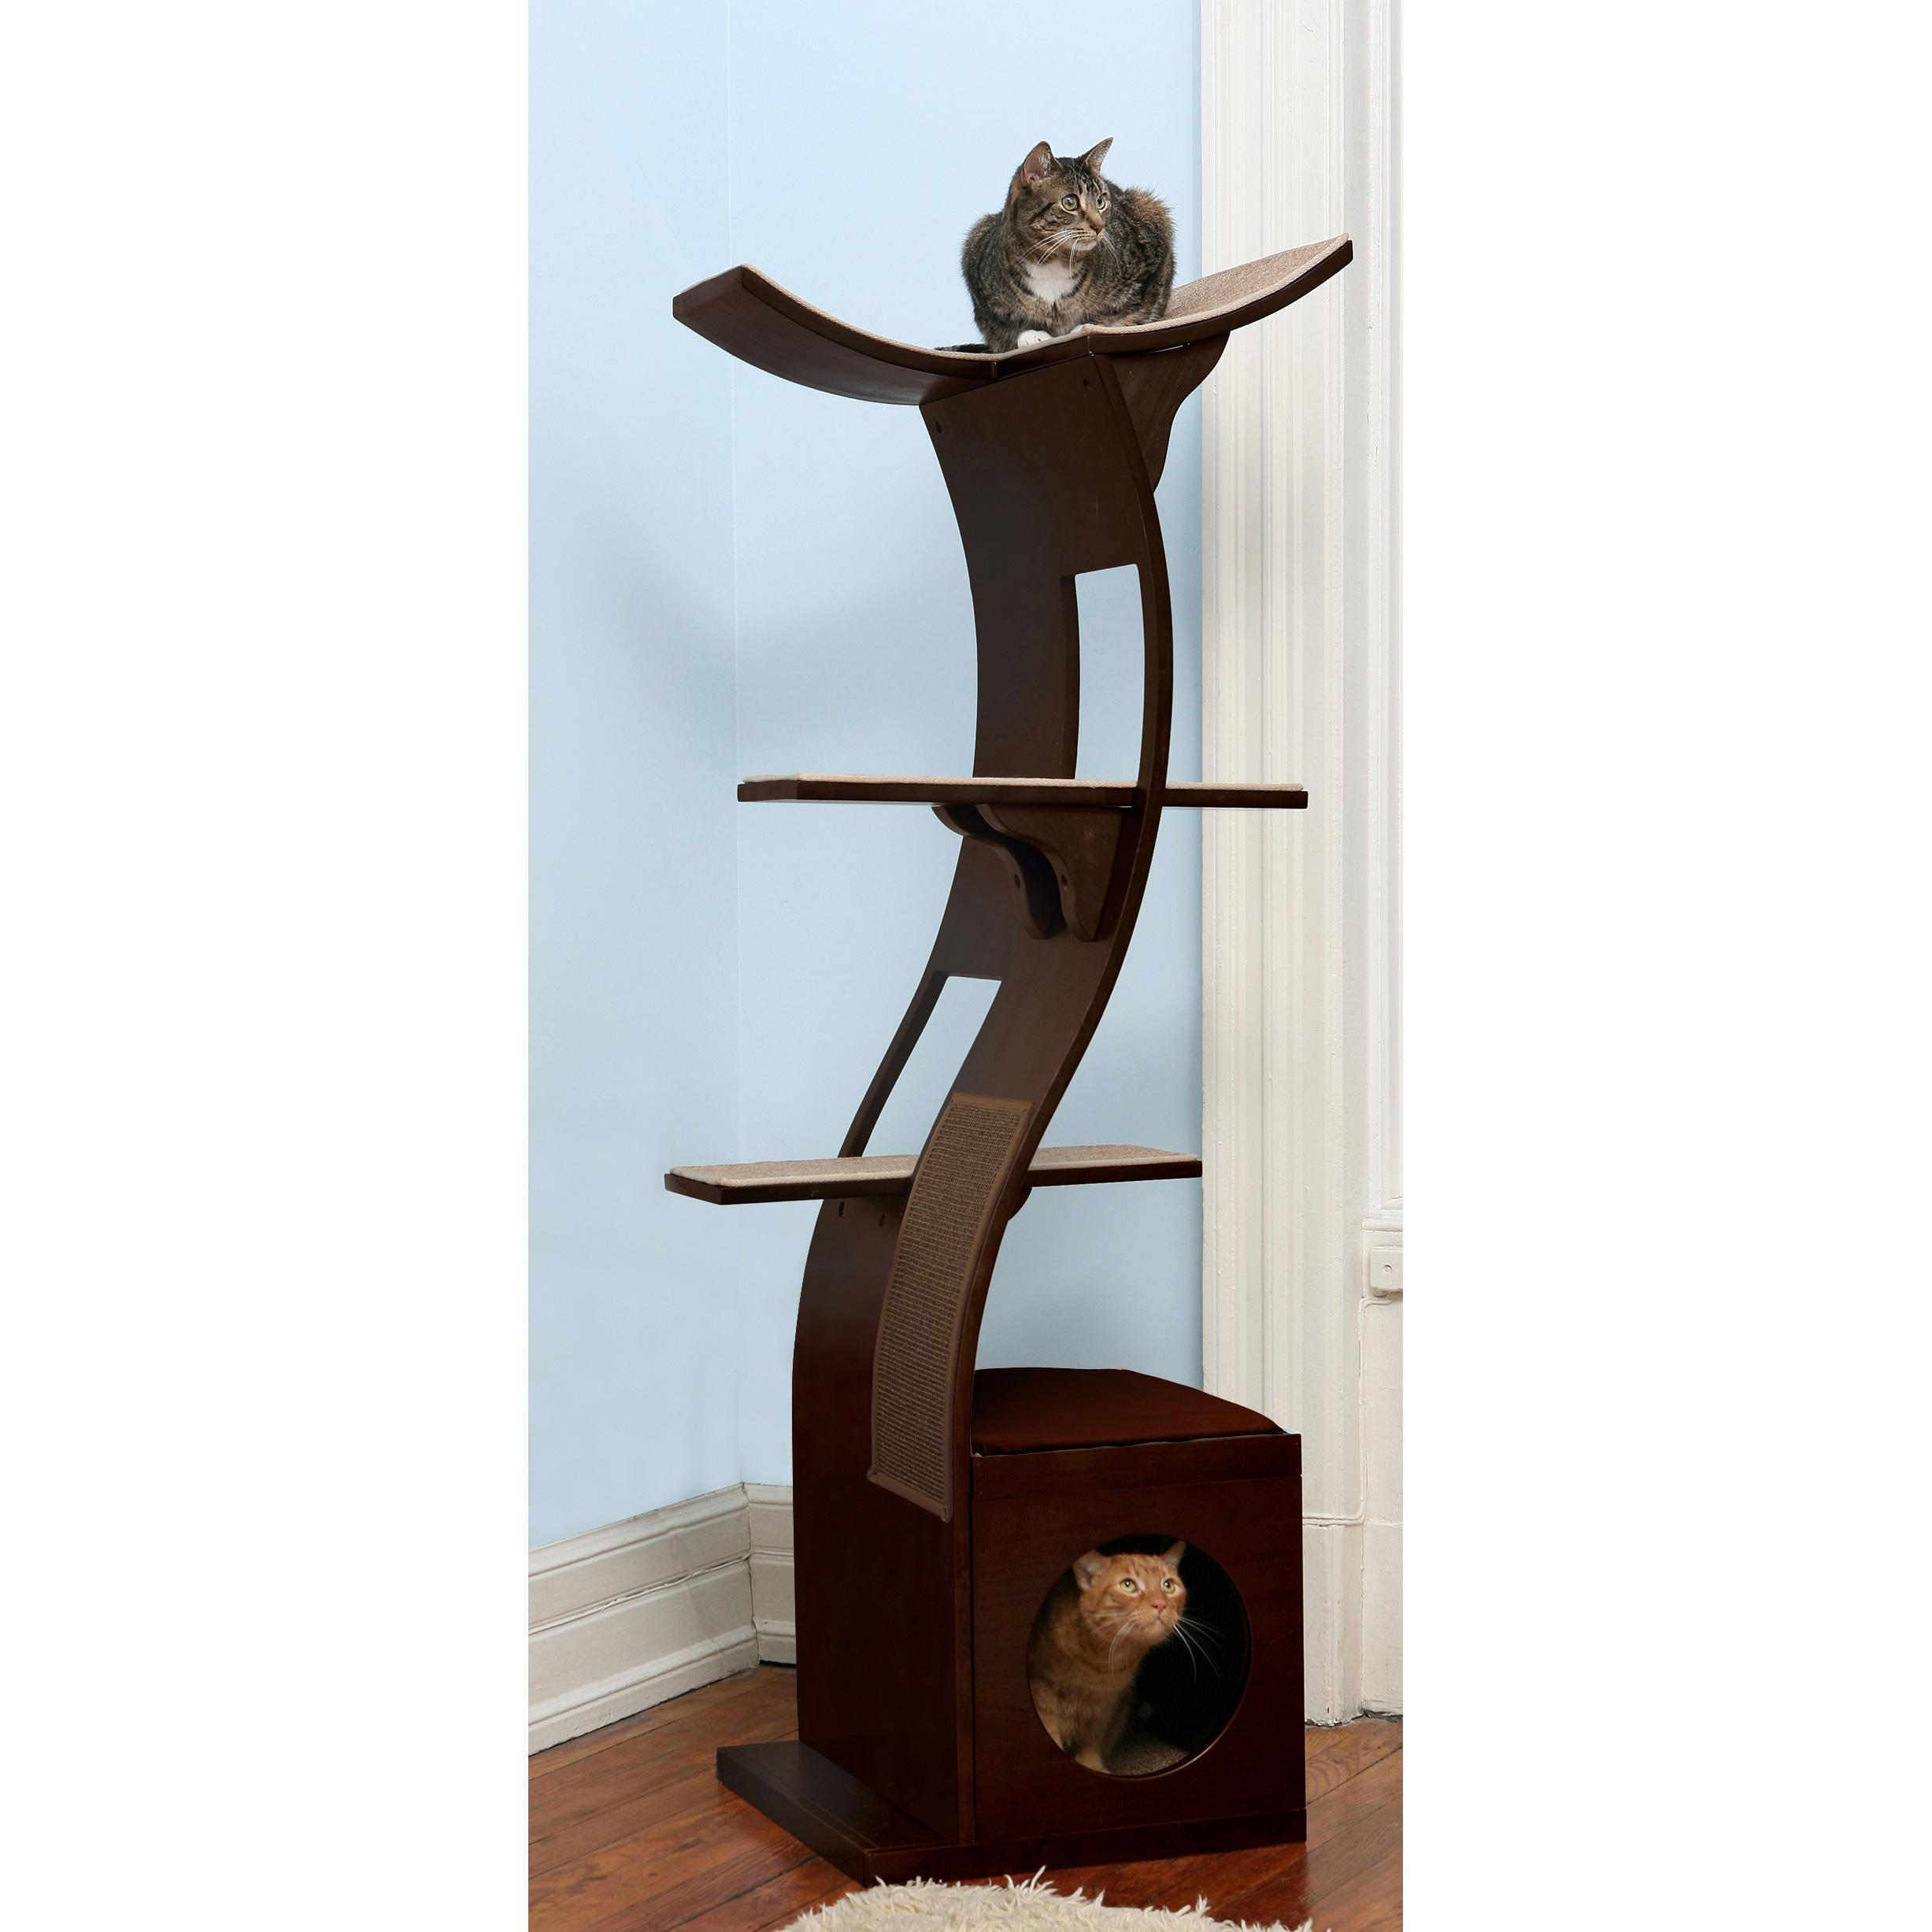 amazoncom  the refined feline lotus cat tower in espresso  cat  - cat tower cat furniture cat tree cat condo